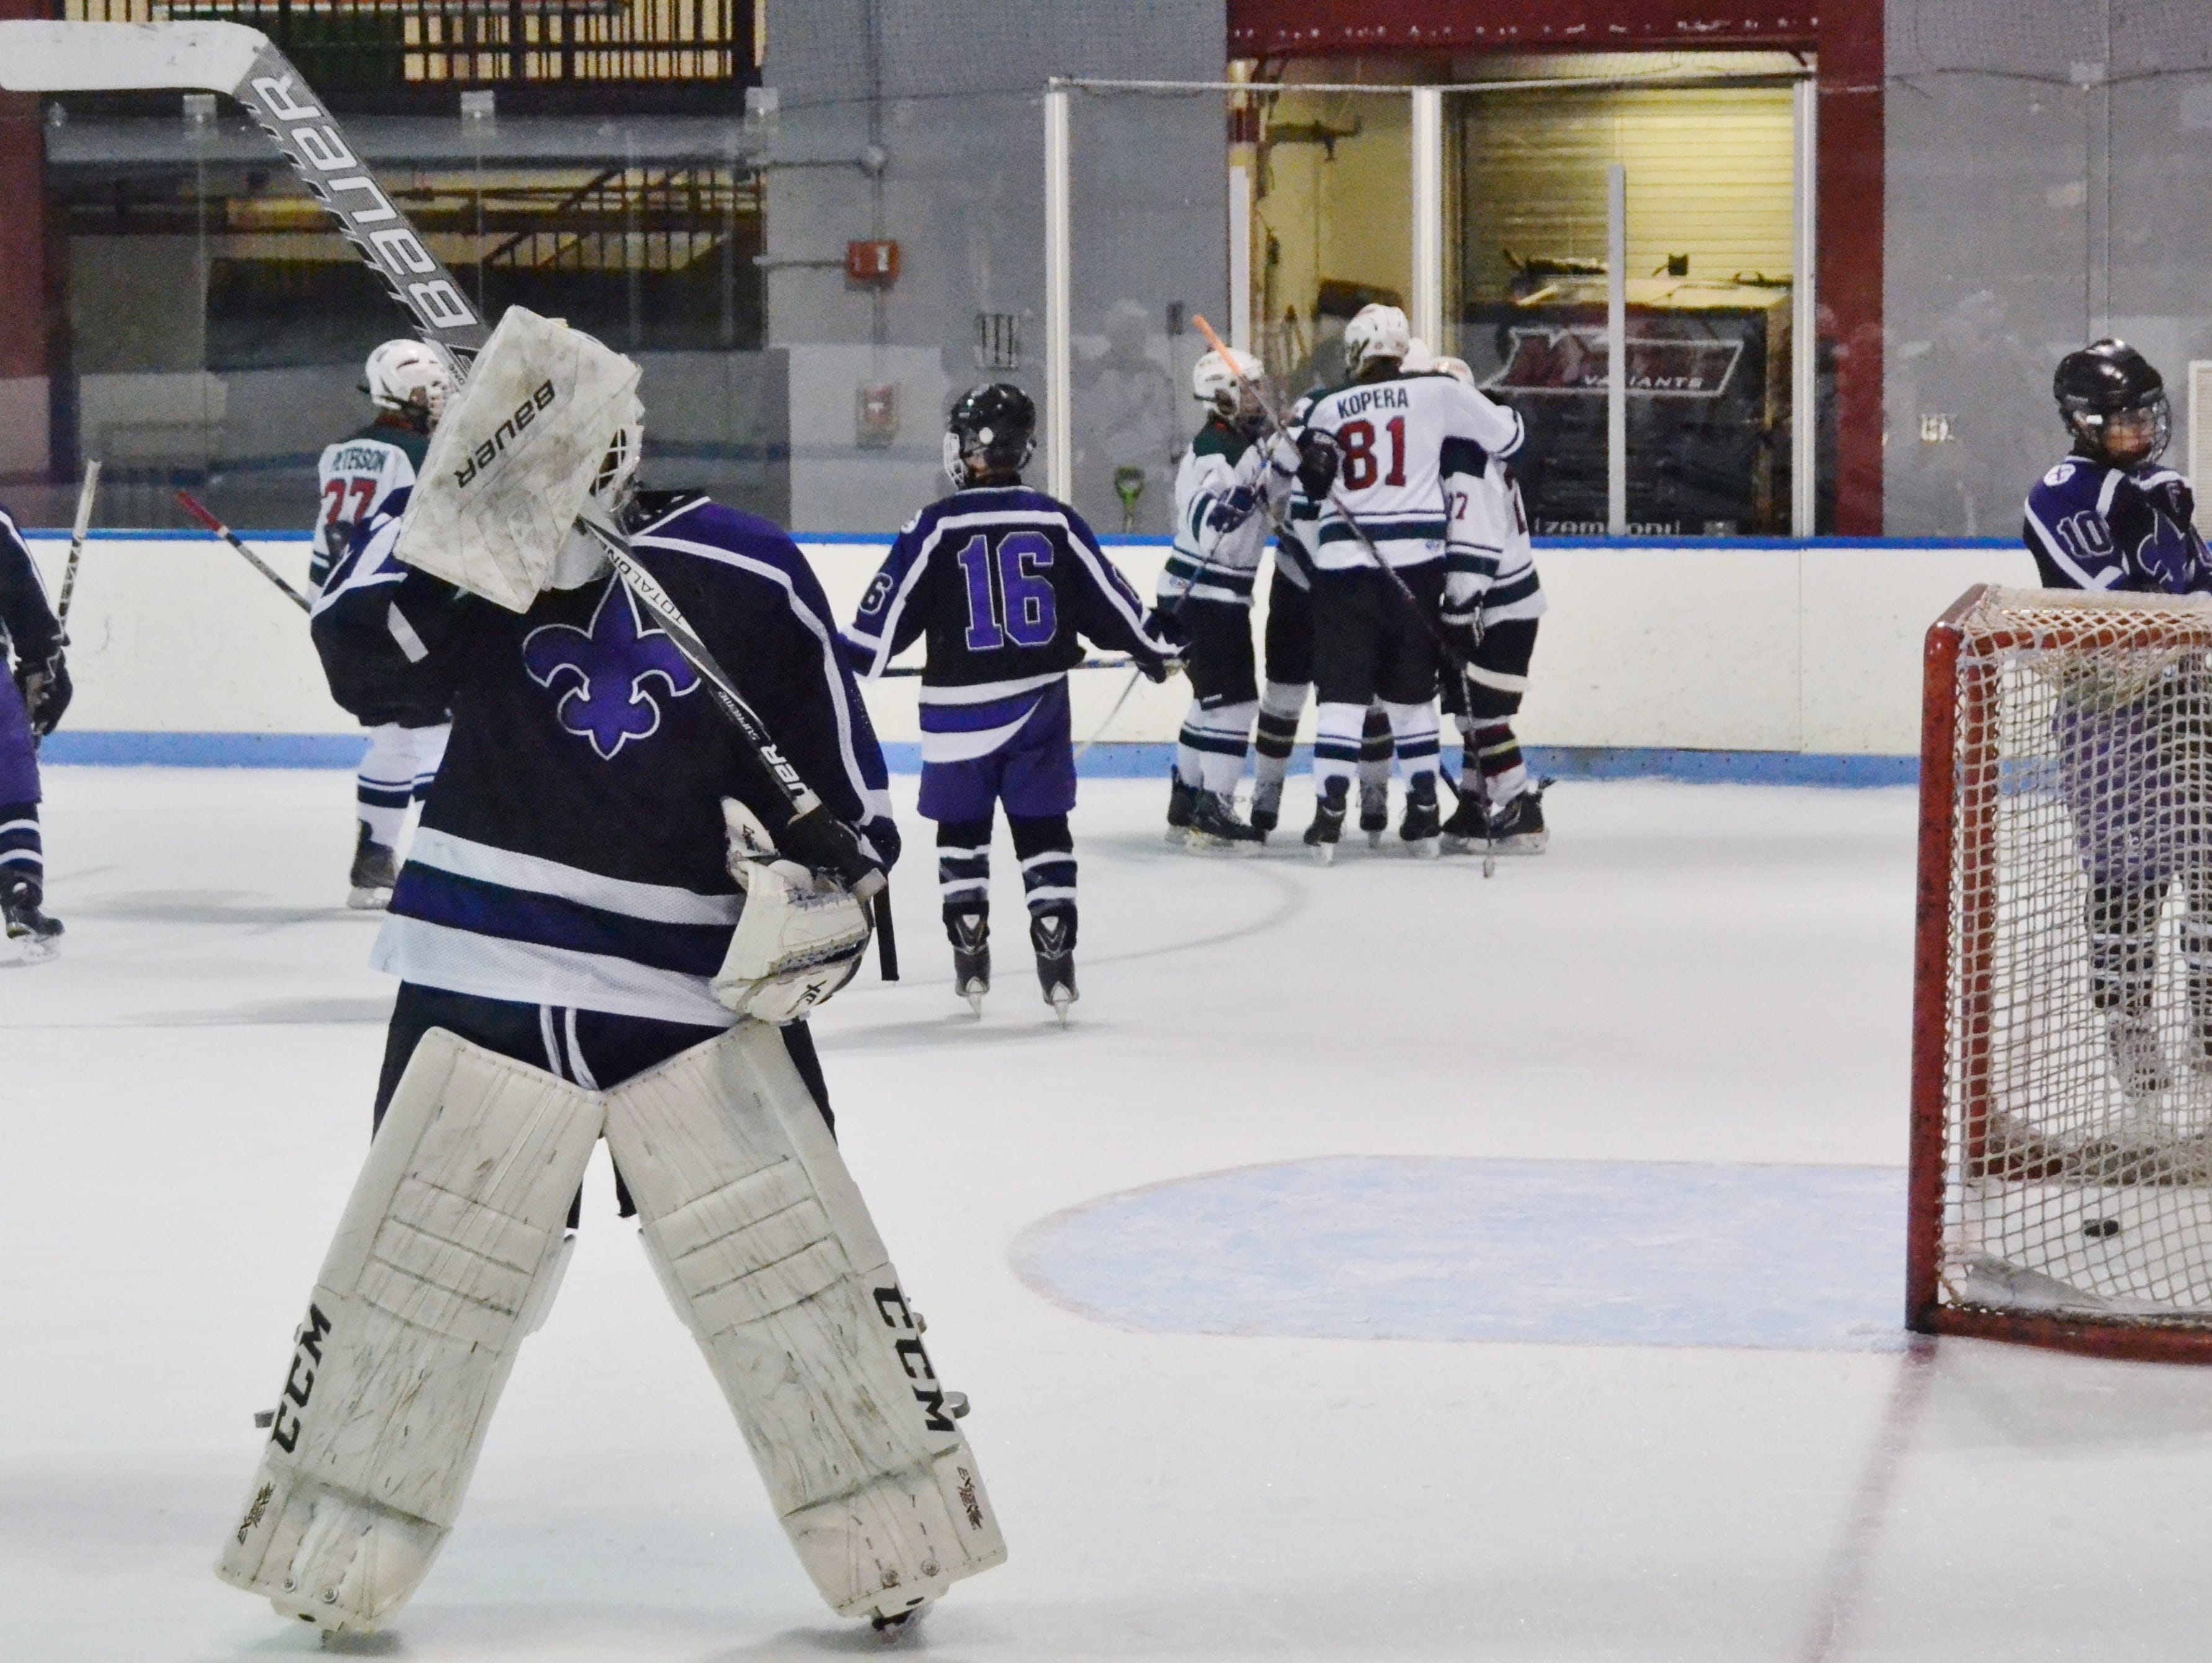 New Rochelle goalie Arthur Liebowitz reacts while Rivertown forward Alex Inglis celebrates a first-period goal with his linemates. The Legends moved on with a 4-1 win and will face Mamaroneck on Wednesday.